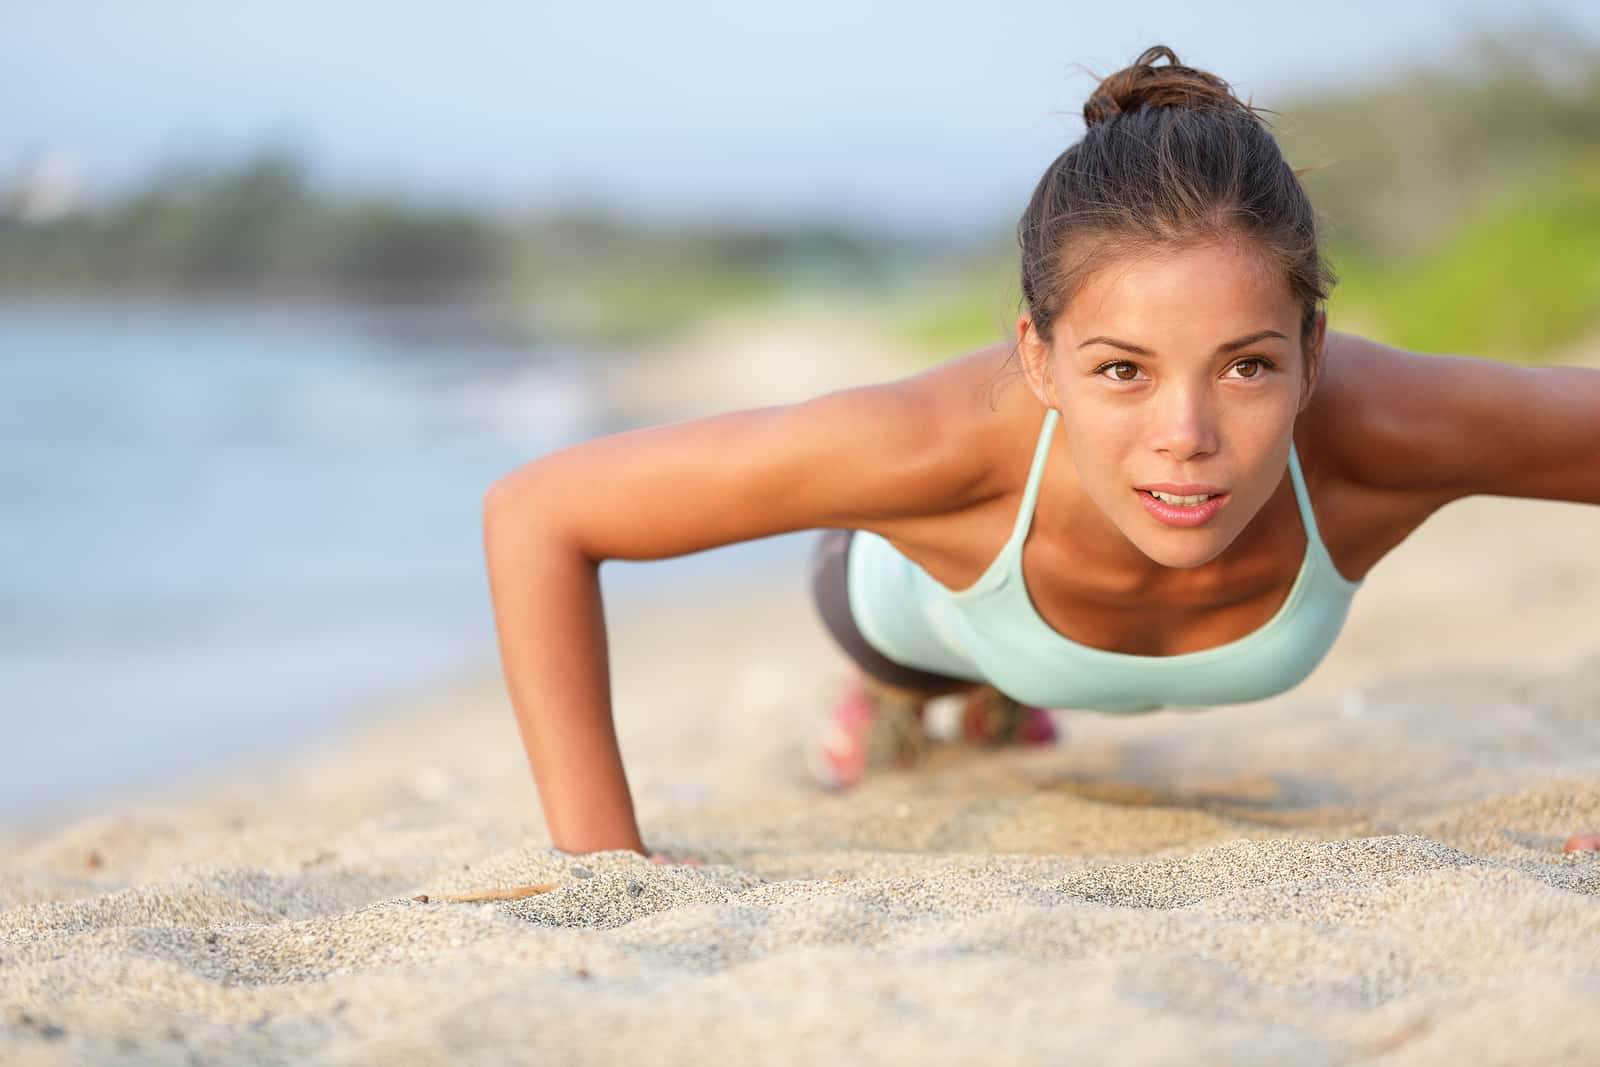 Push-ups fitness woman doing pushups outside on beach